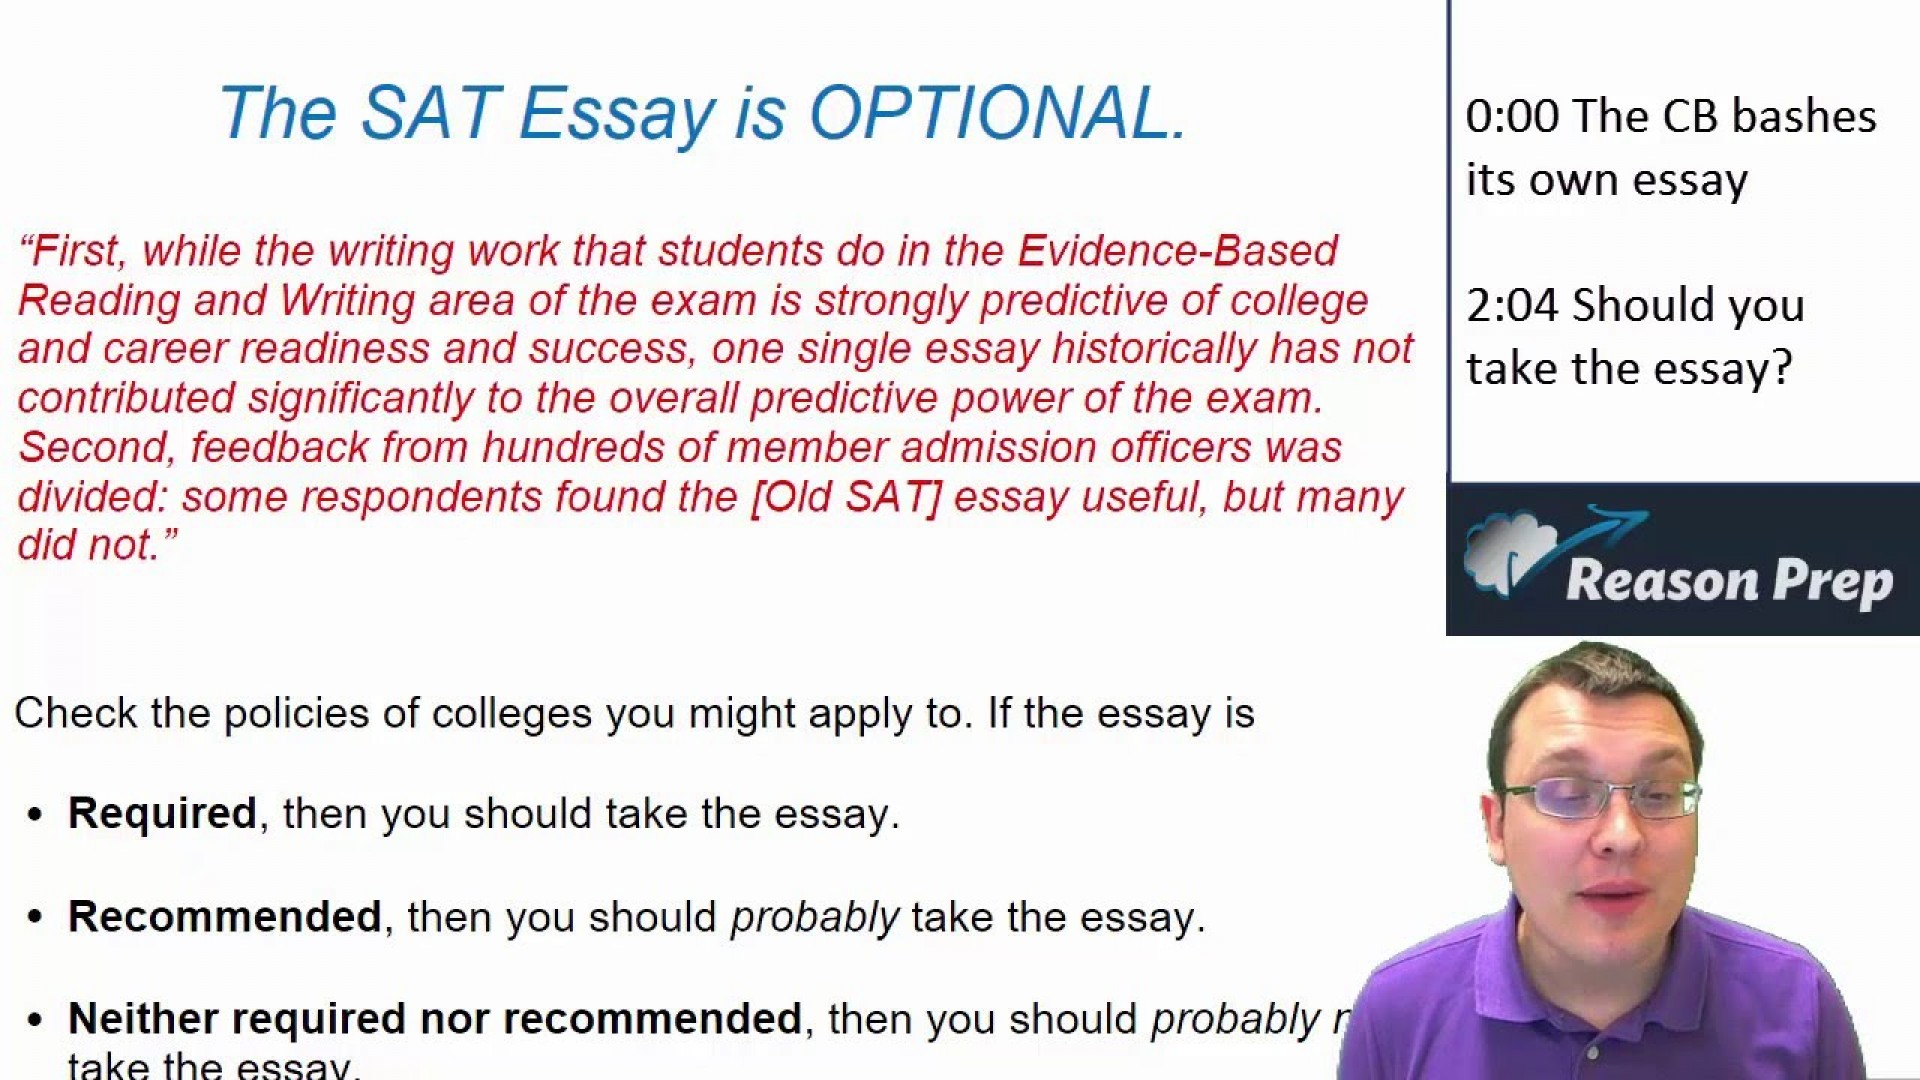 001 Should I Take The Sat Essay Maxresdefault Surprising Reddit U 1920